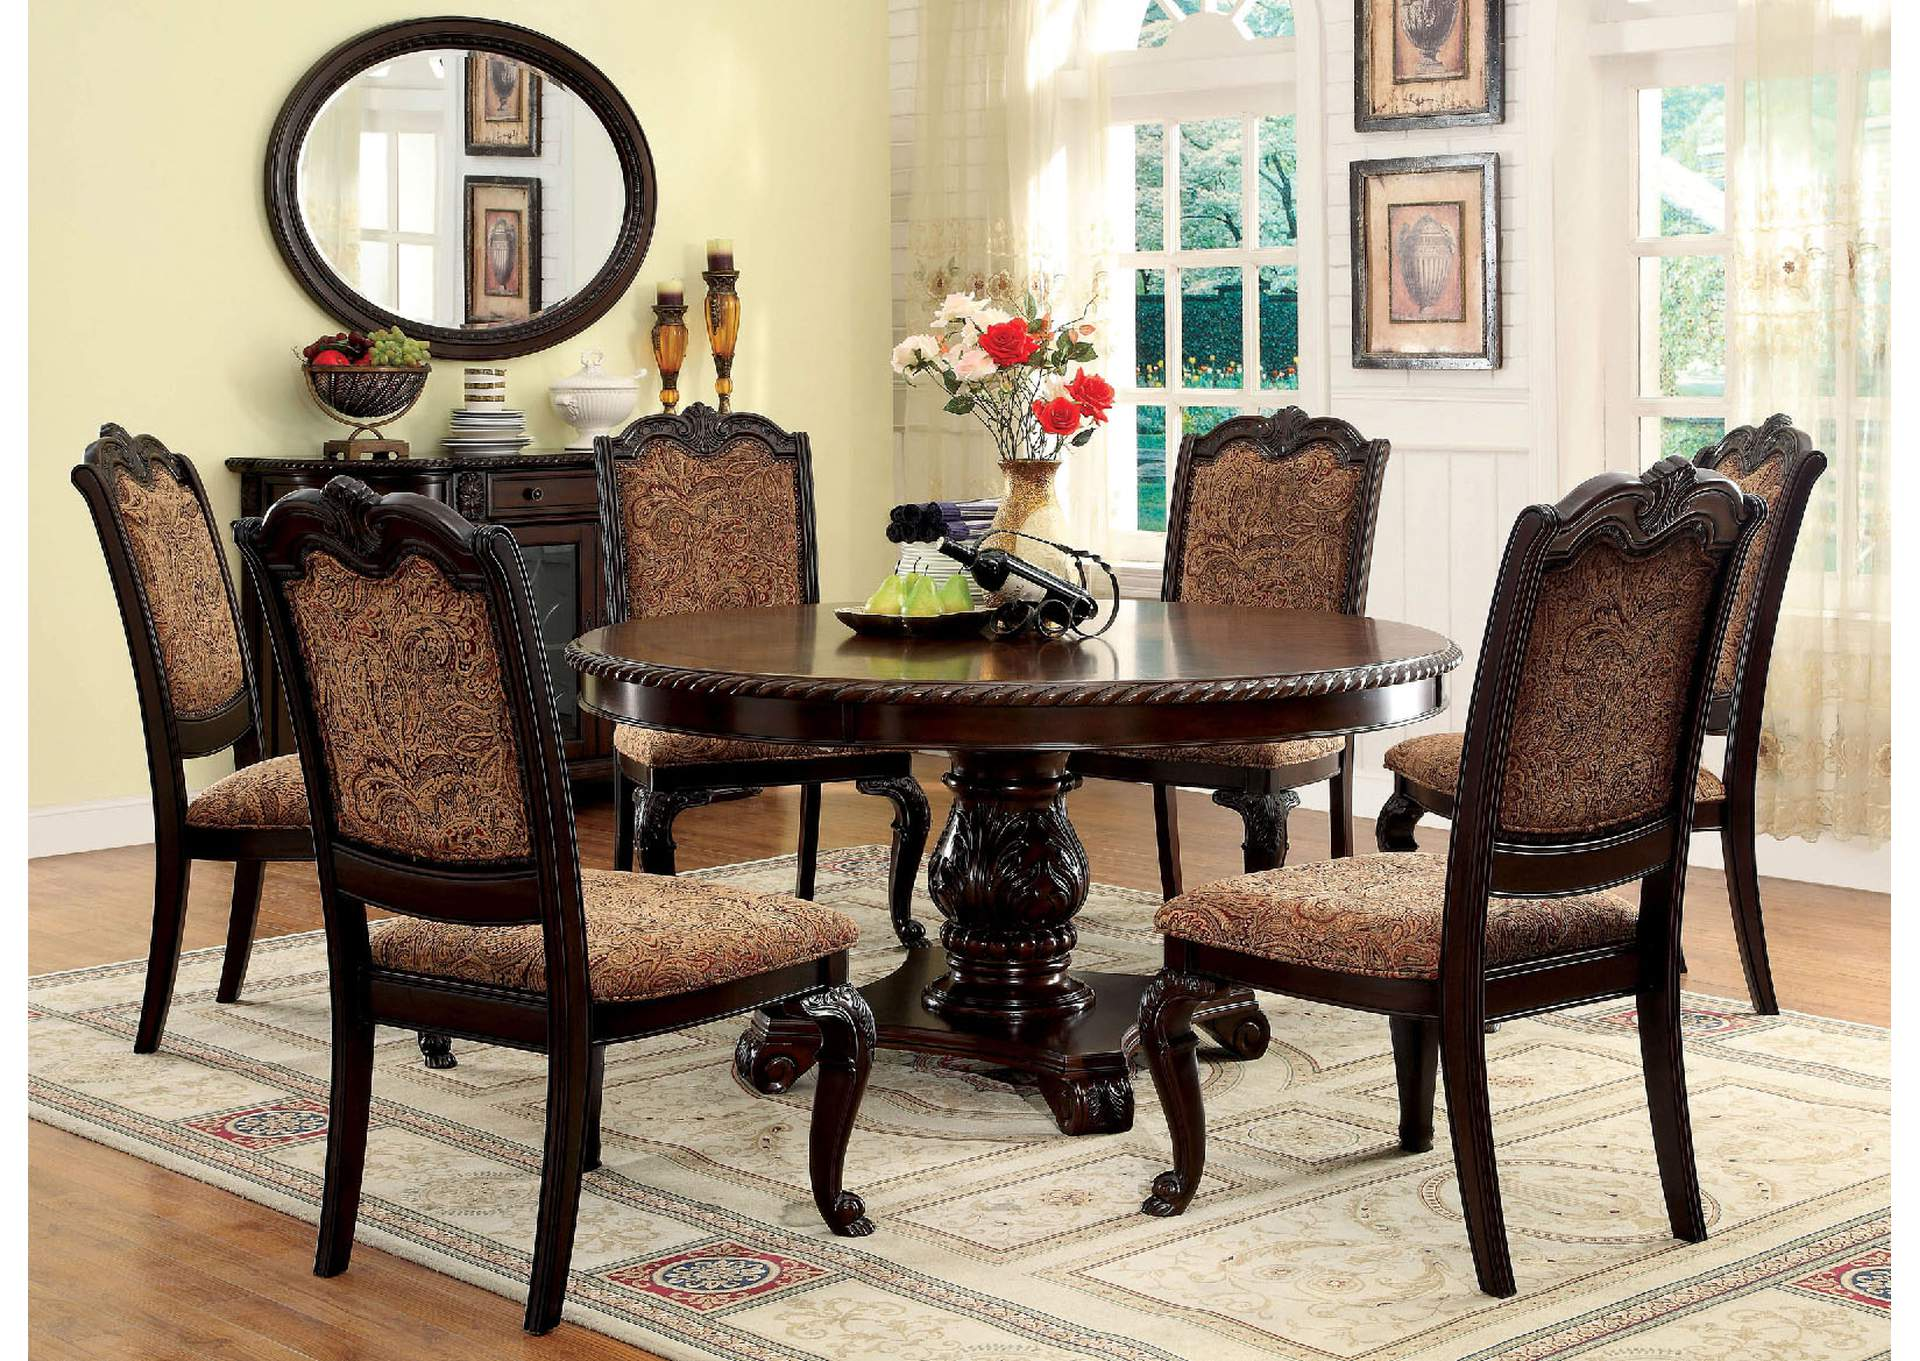 Bellagio Round Dining Table W 6 Side ChairsFurniture Of America